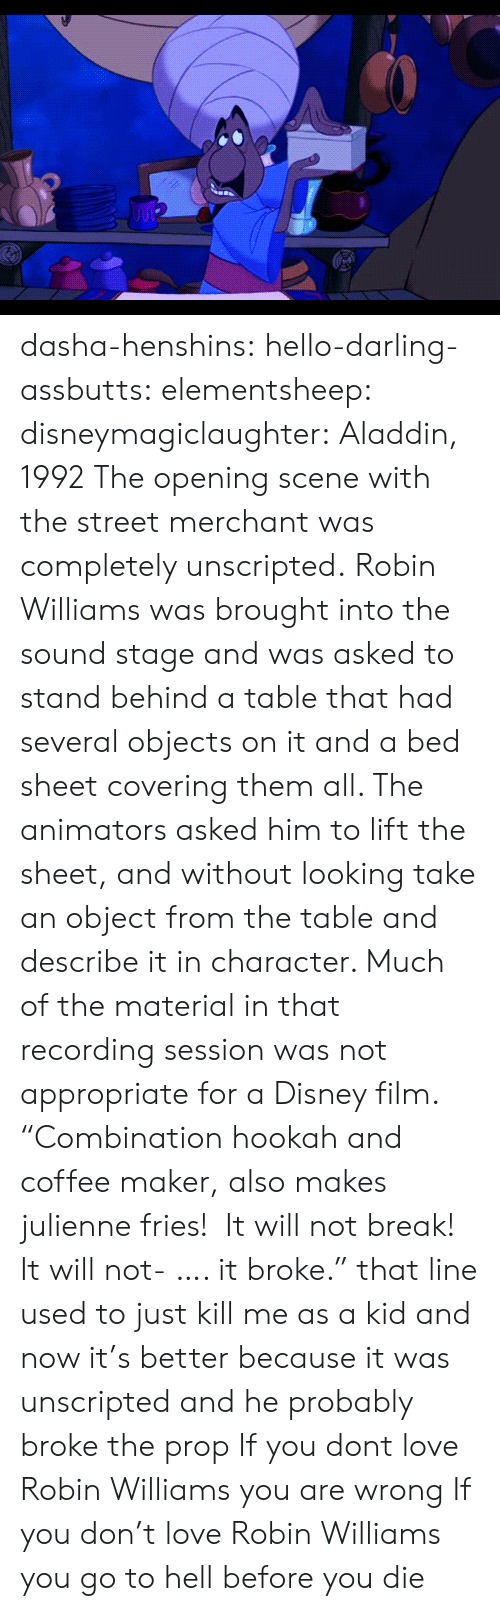 "Robin Williams: dasha-henshins: hello-darling-assbutts:  elementsheep:  disneymagiclaughter:  Aladdin, 1992 The opening scene with the street merchant was completely unscripted. Robin Williams was brought into the sound stage and was asked to stand behind a table that had several objects on it and a bed sheet covering them all. The animators asked him to lift the sheet, and without looking take an object from the table and describe it in character. Much of the material in that recording session was not appropriate for a Disney film.   ""Combination hookah and coffee maker, also makes julienne fries!  It will not break! It will not- …. it broke."" that line used to just kill me as a kid and now it's better because it was unscripted and he probably broke the prop  If you dont love Robin Williams you are wrong   If you don't love Robin Williams you go to hell before you die"